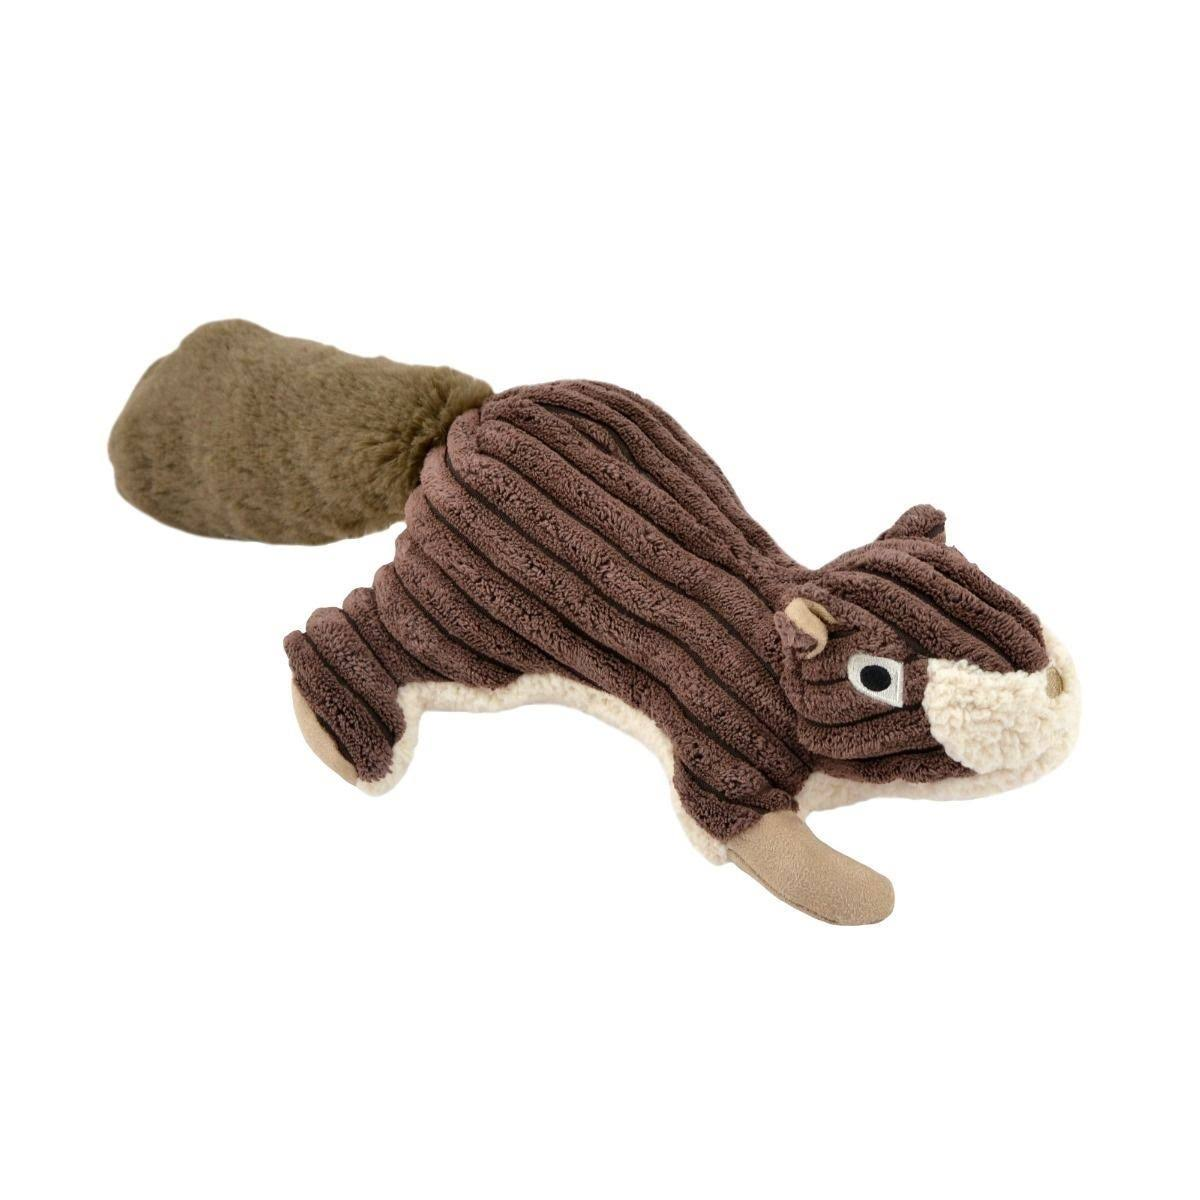 Tall Tails 88216258 Squeaker Squirrel Dog Toy Brown - 12 in.